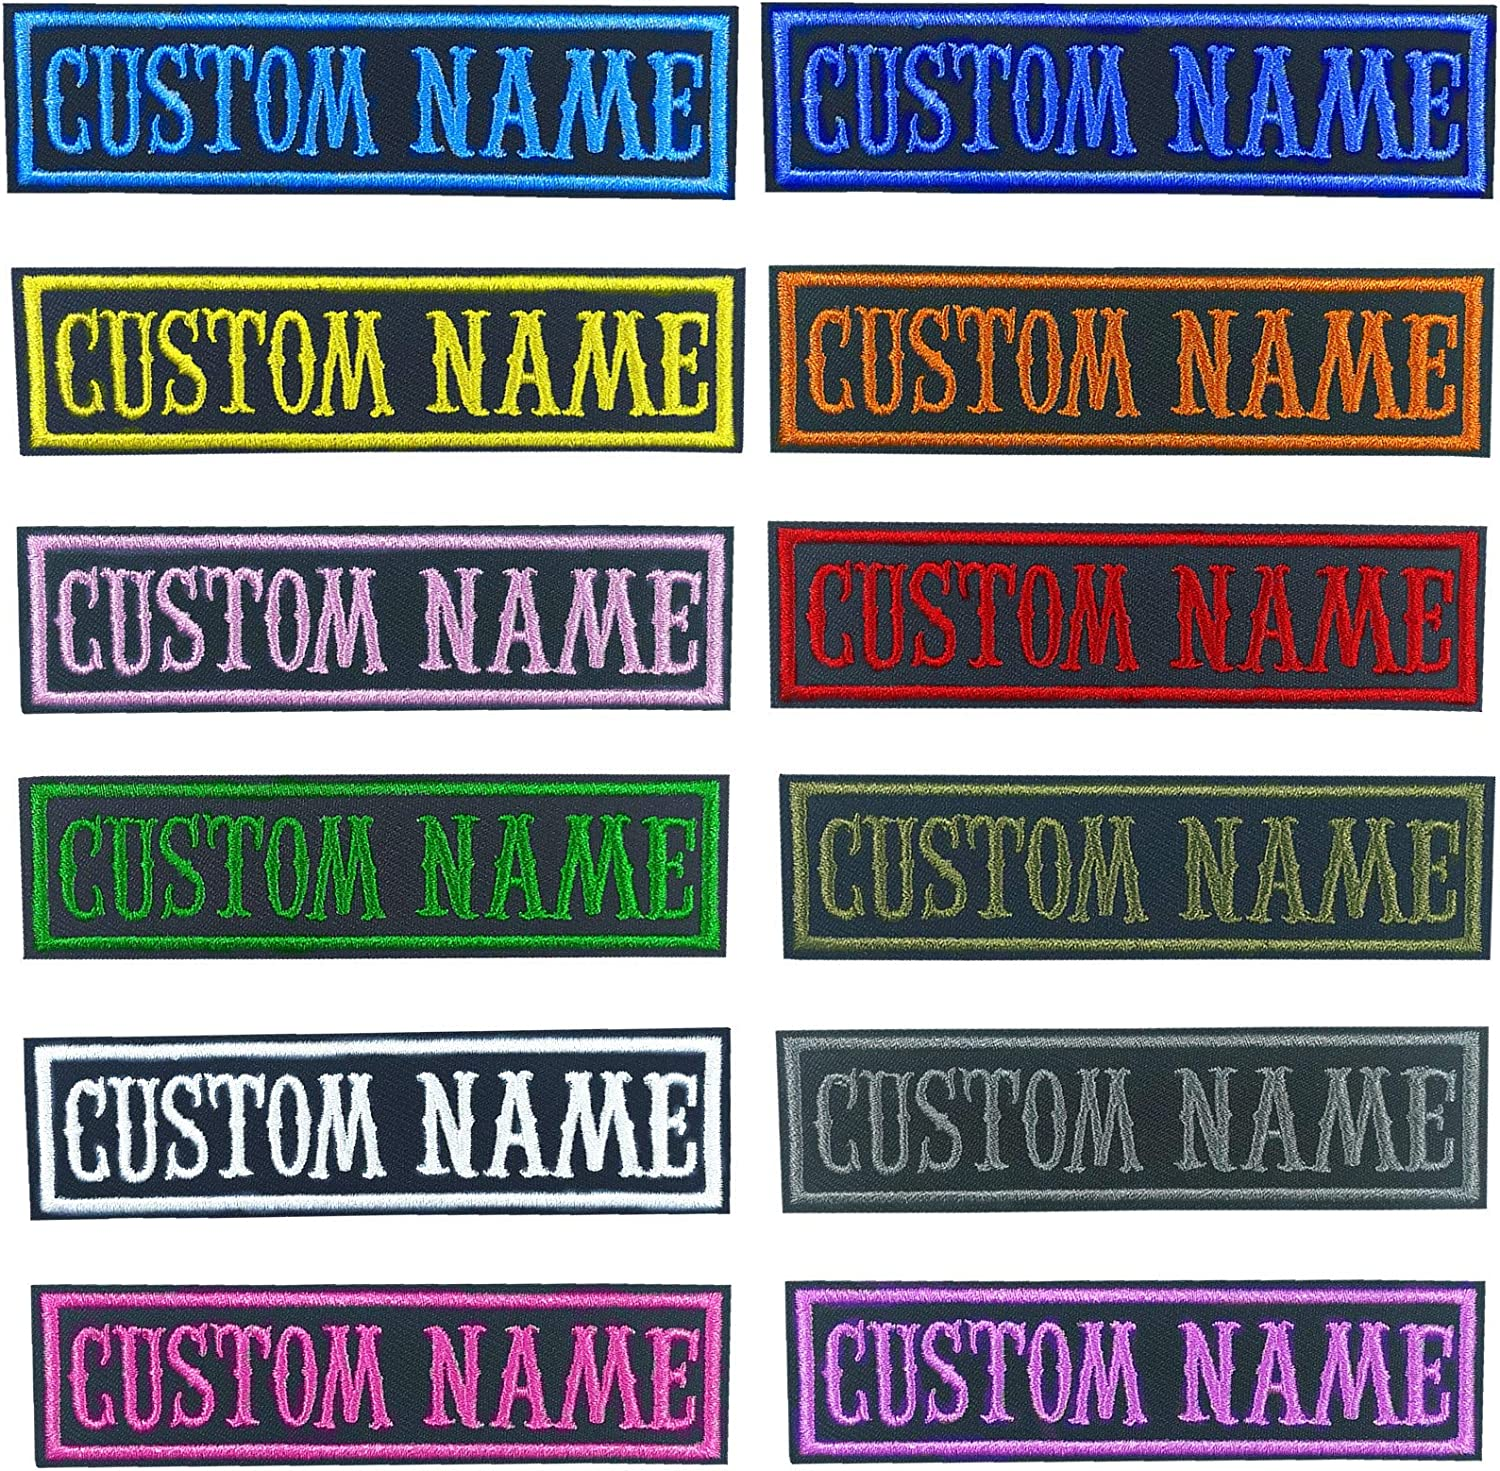 MVCEN Custom Popular brand Name Patches Military 2 Pcs Directly managed store Personalized